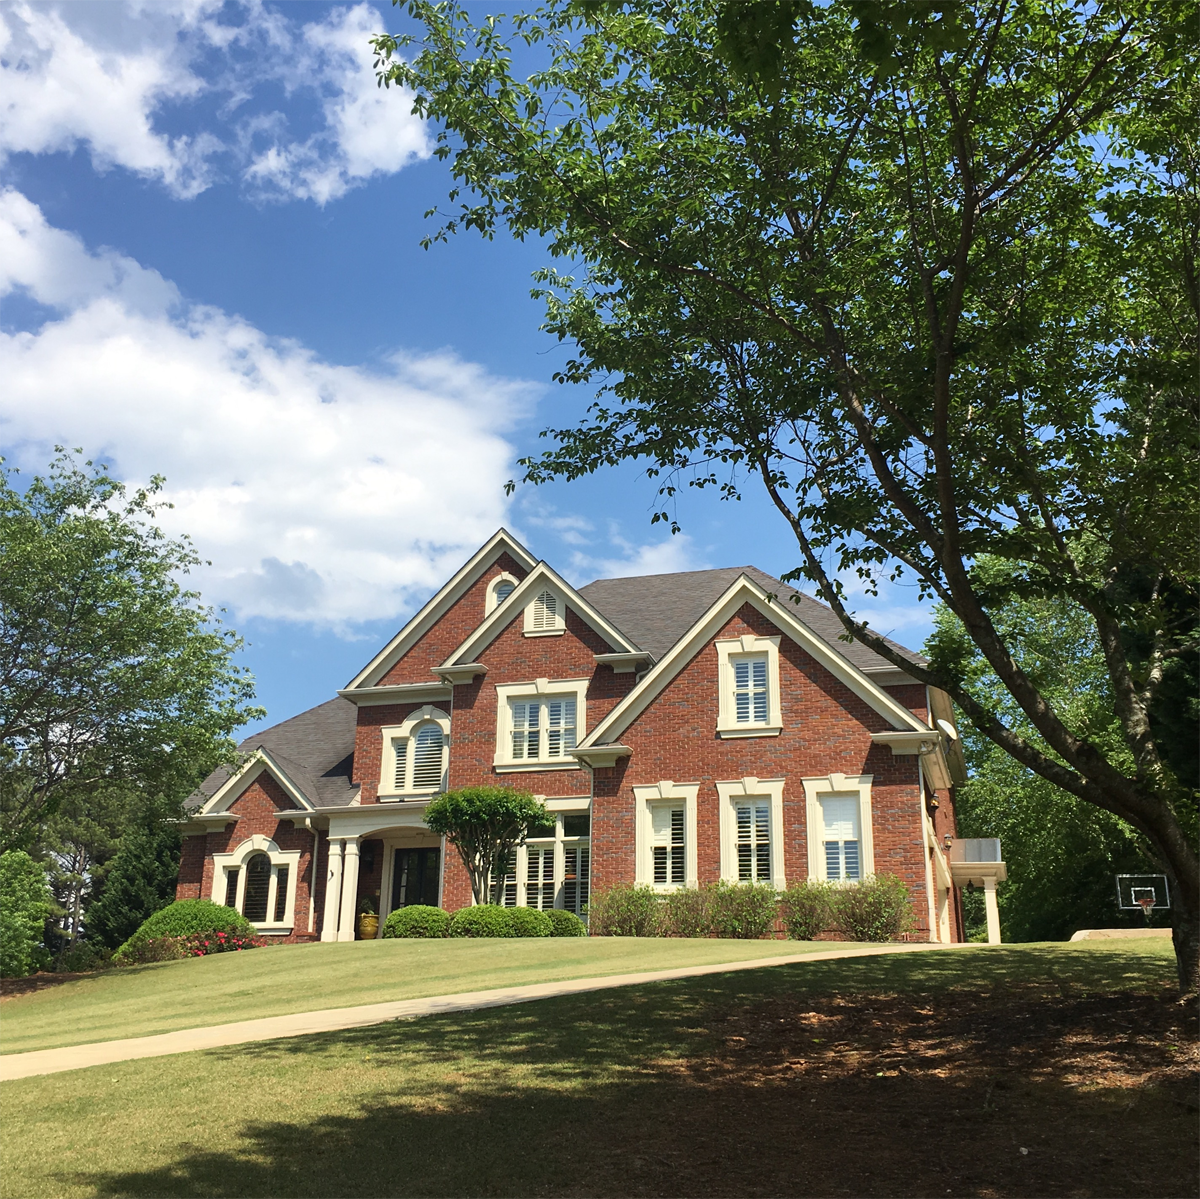 Single Family Home for Sale at Stunning Private Sanctuary Nestled In Sought After Sugarloaf Country Club 2000 Sugarloaf Club Drive Duluth, Georgia, 30097 United States